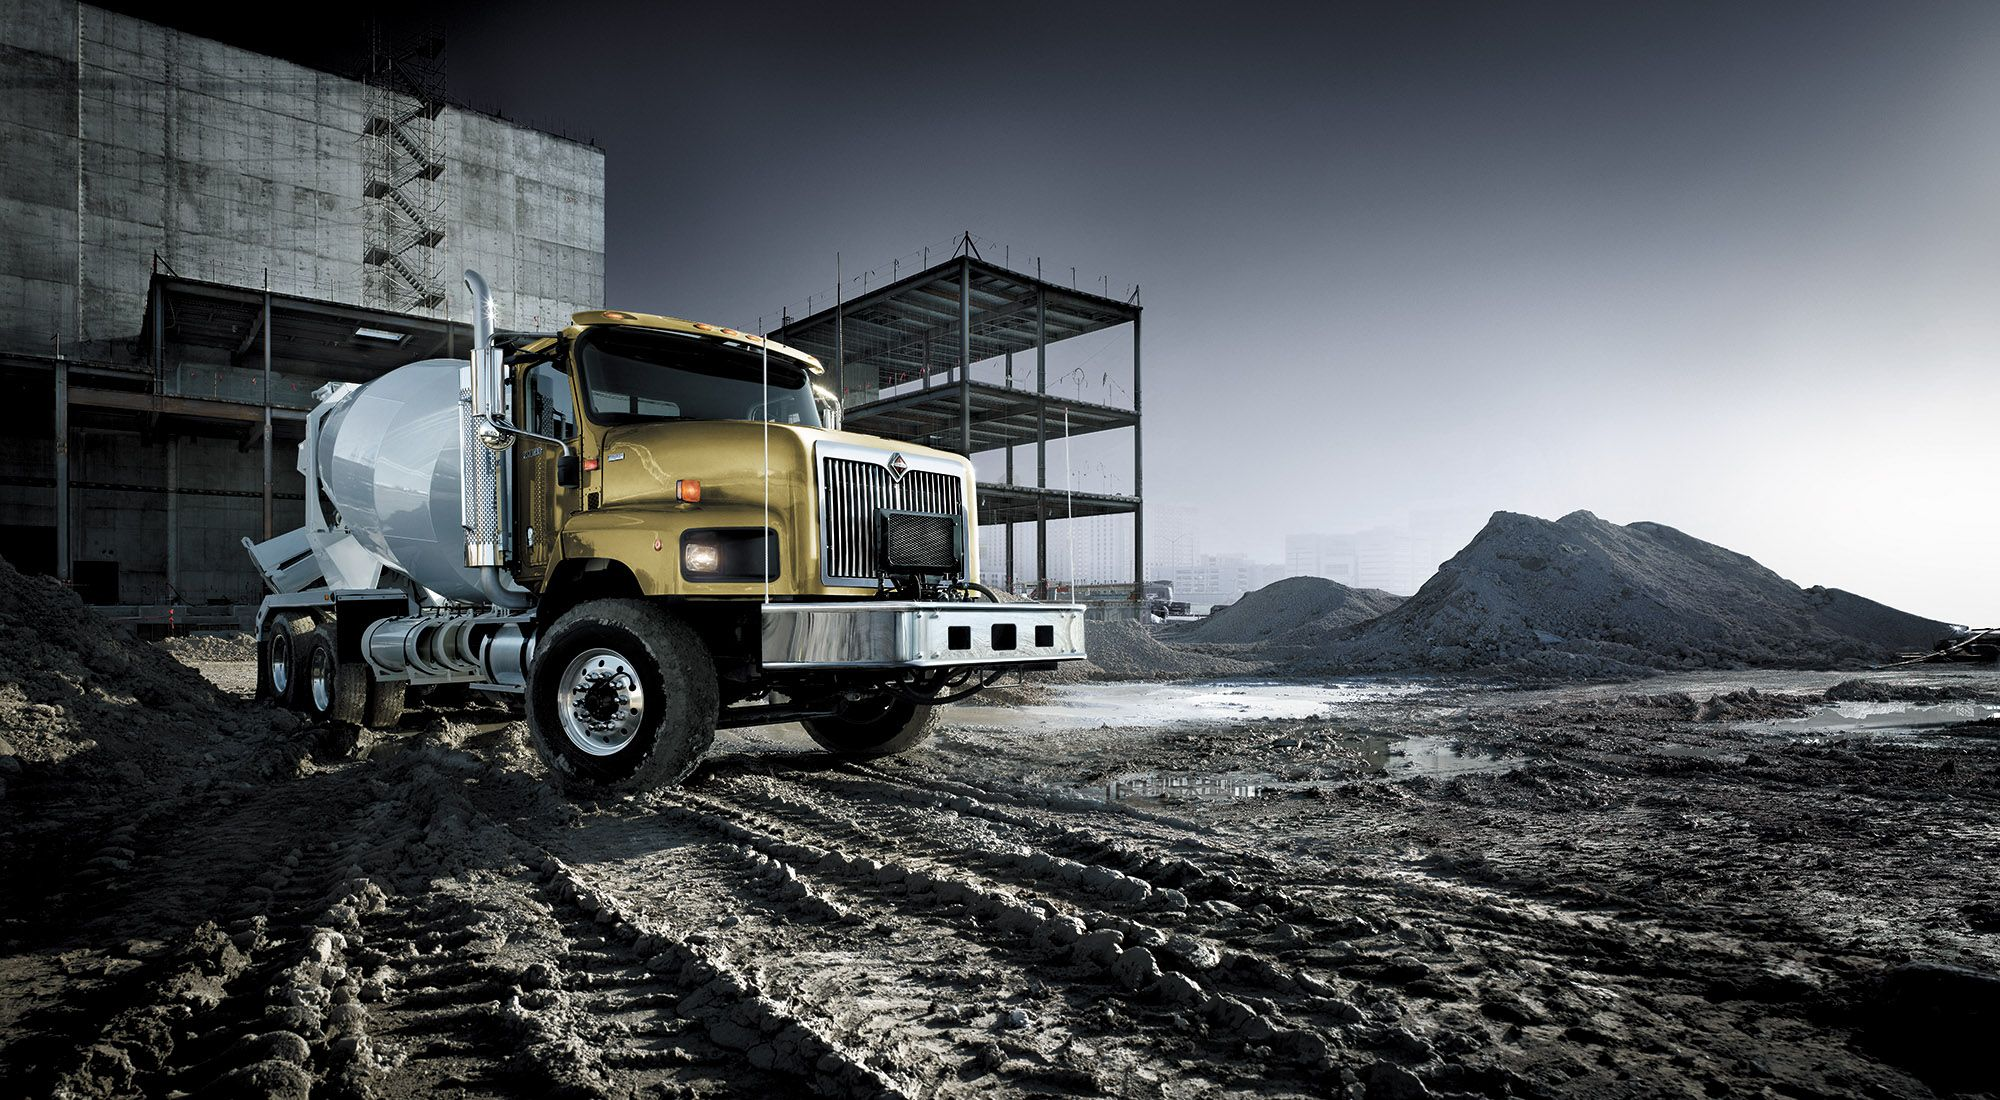 Photo retouching 20 image composites for International Truck. Photographer:  Markus Wendler, Germany. Explore more high end advertising retouching and Photoshop work from Filtre Studio Chicago at filtrestudio.com